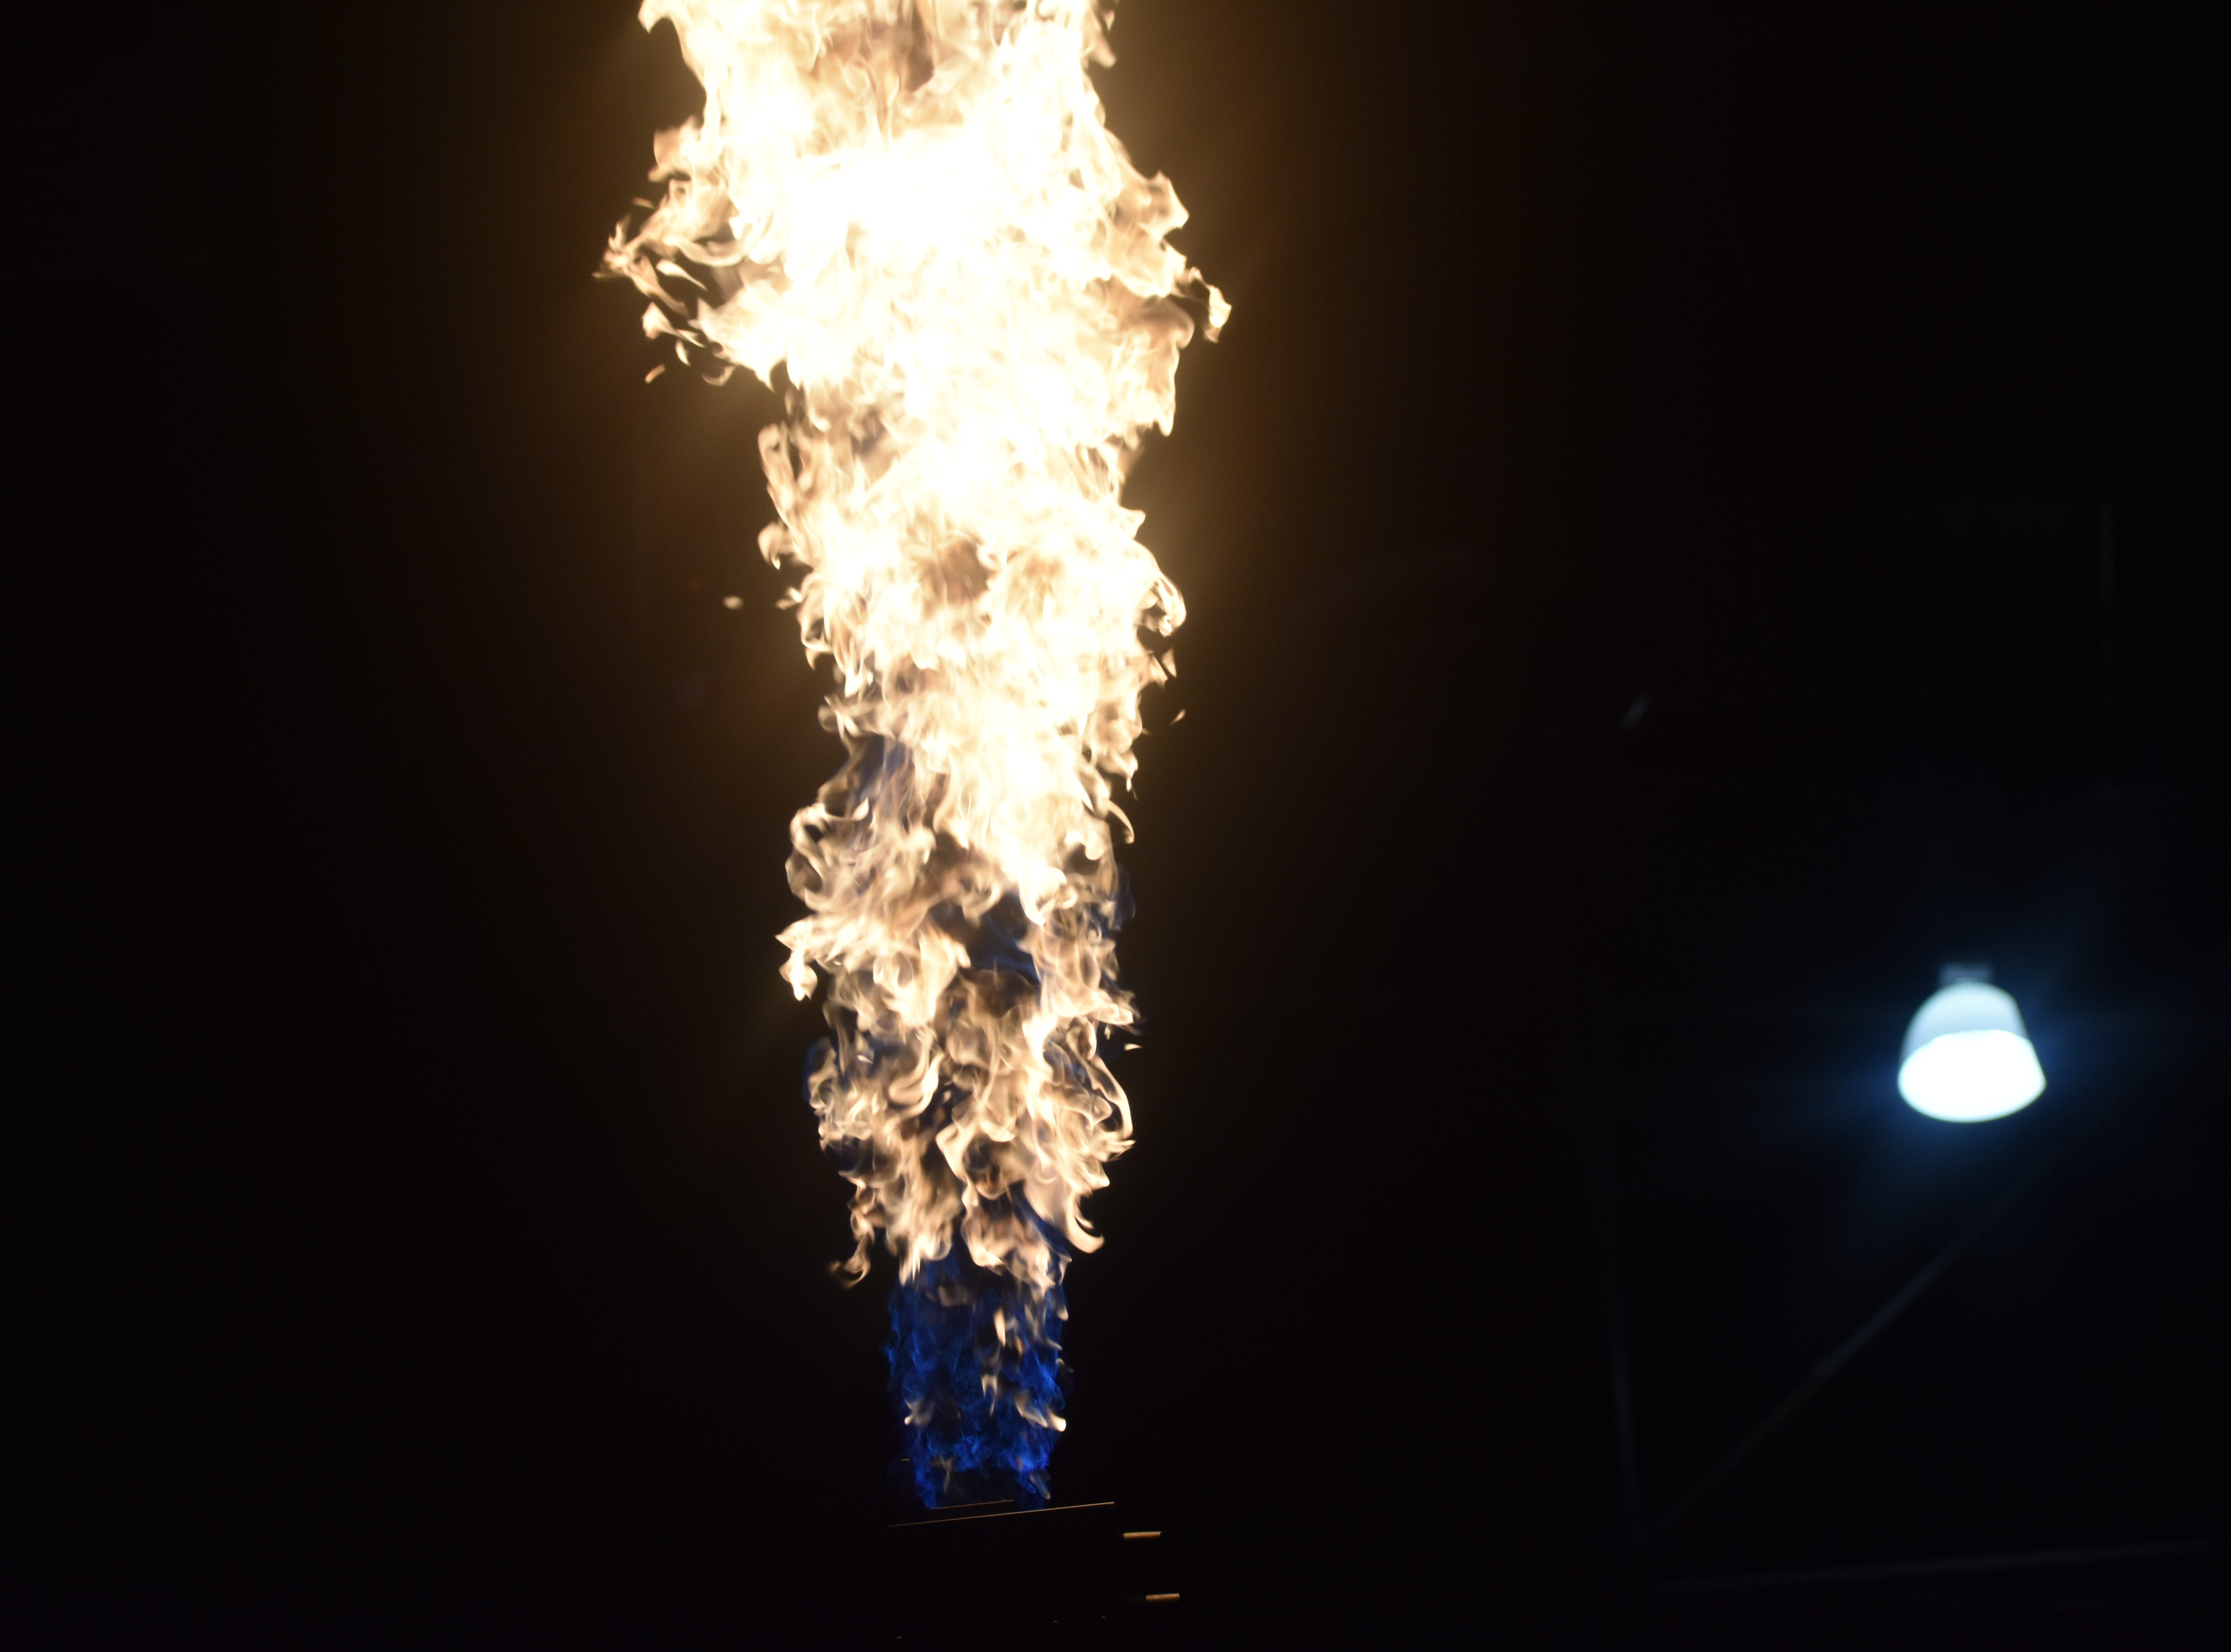 Pregame pyrotechnics before the CSU men's basketball game against South Dakota on Sunday at Moby Arena.